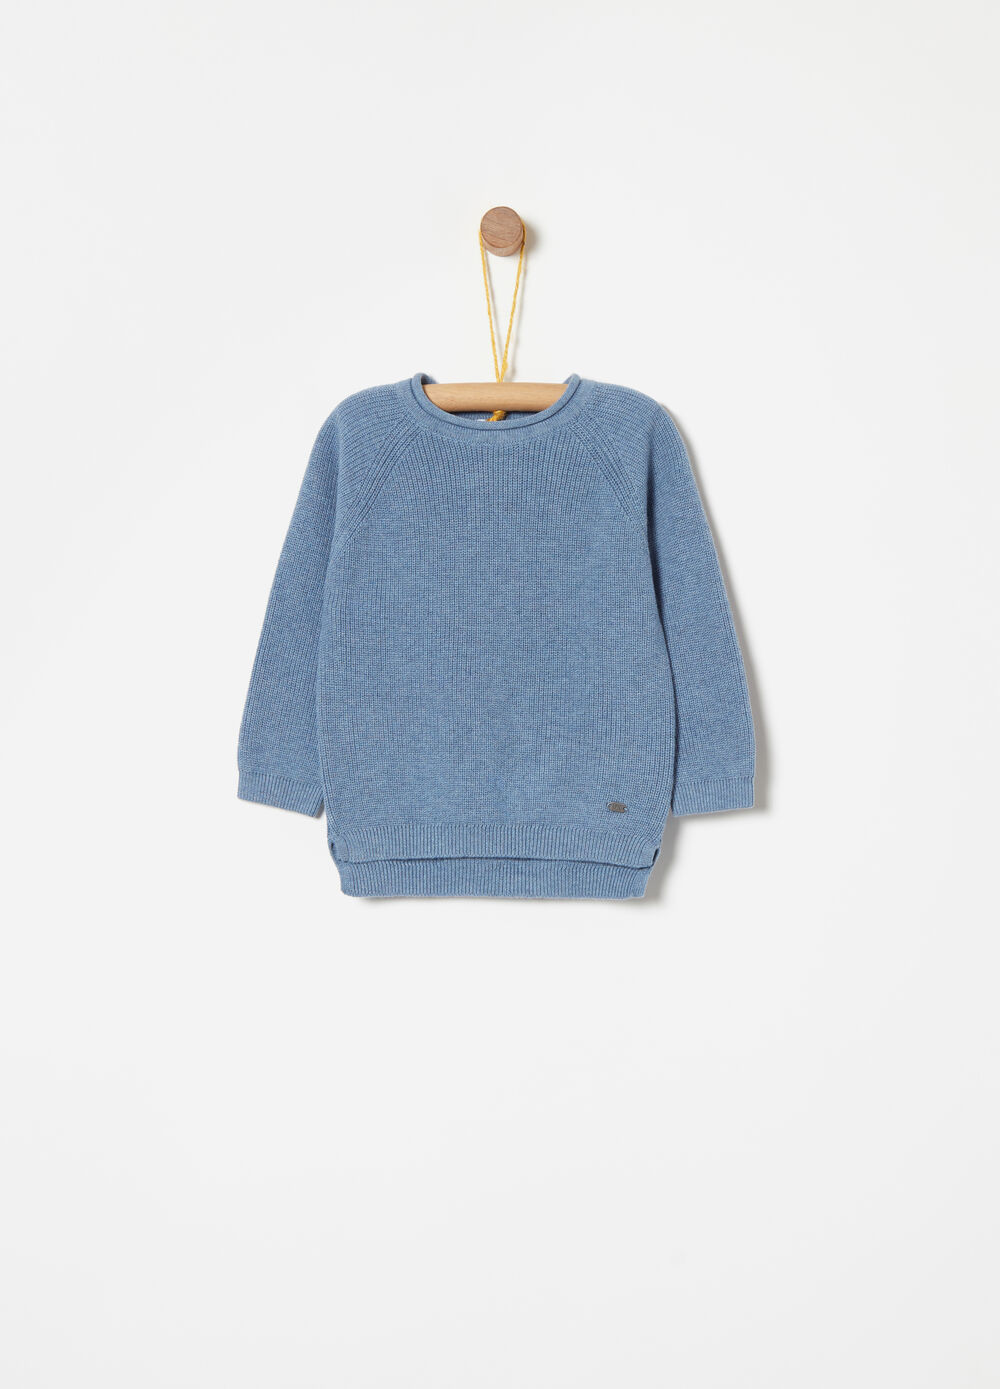 Knitted round neck pullover in 100% cotton